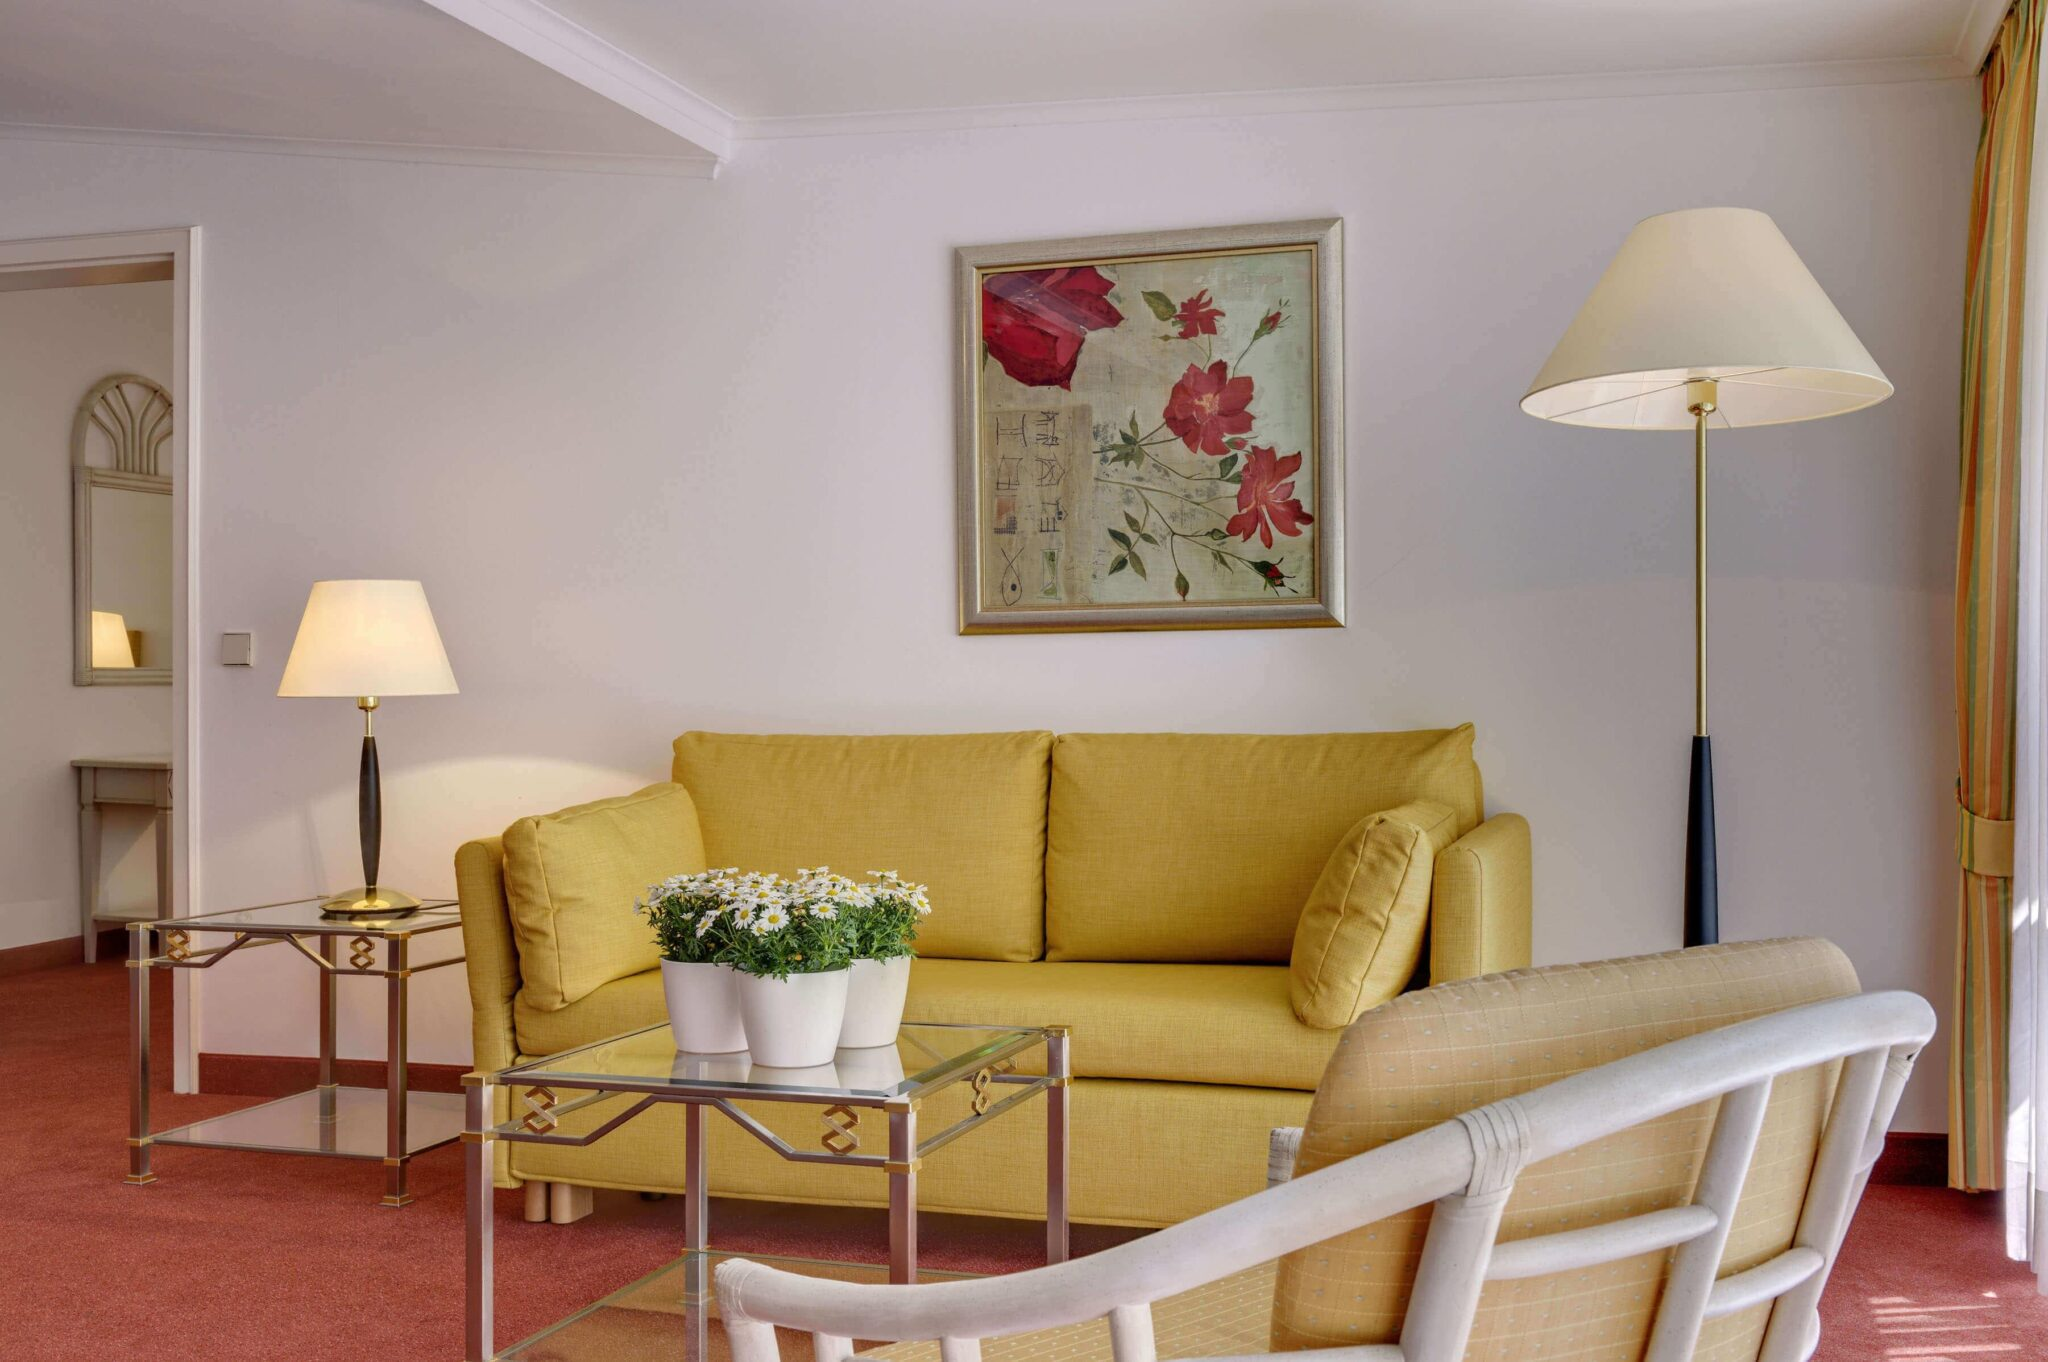 serviced apartments, Serviced Apartments – Long Stay, Hotel am Sophienpark